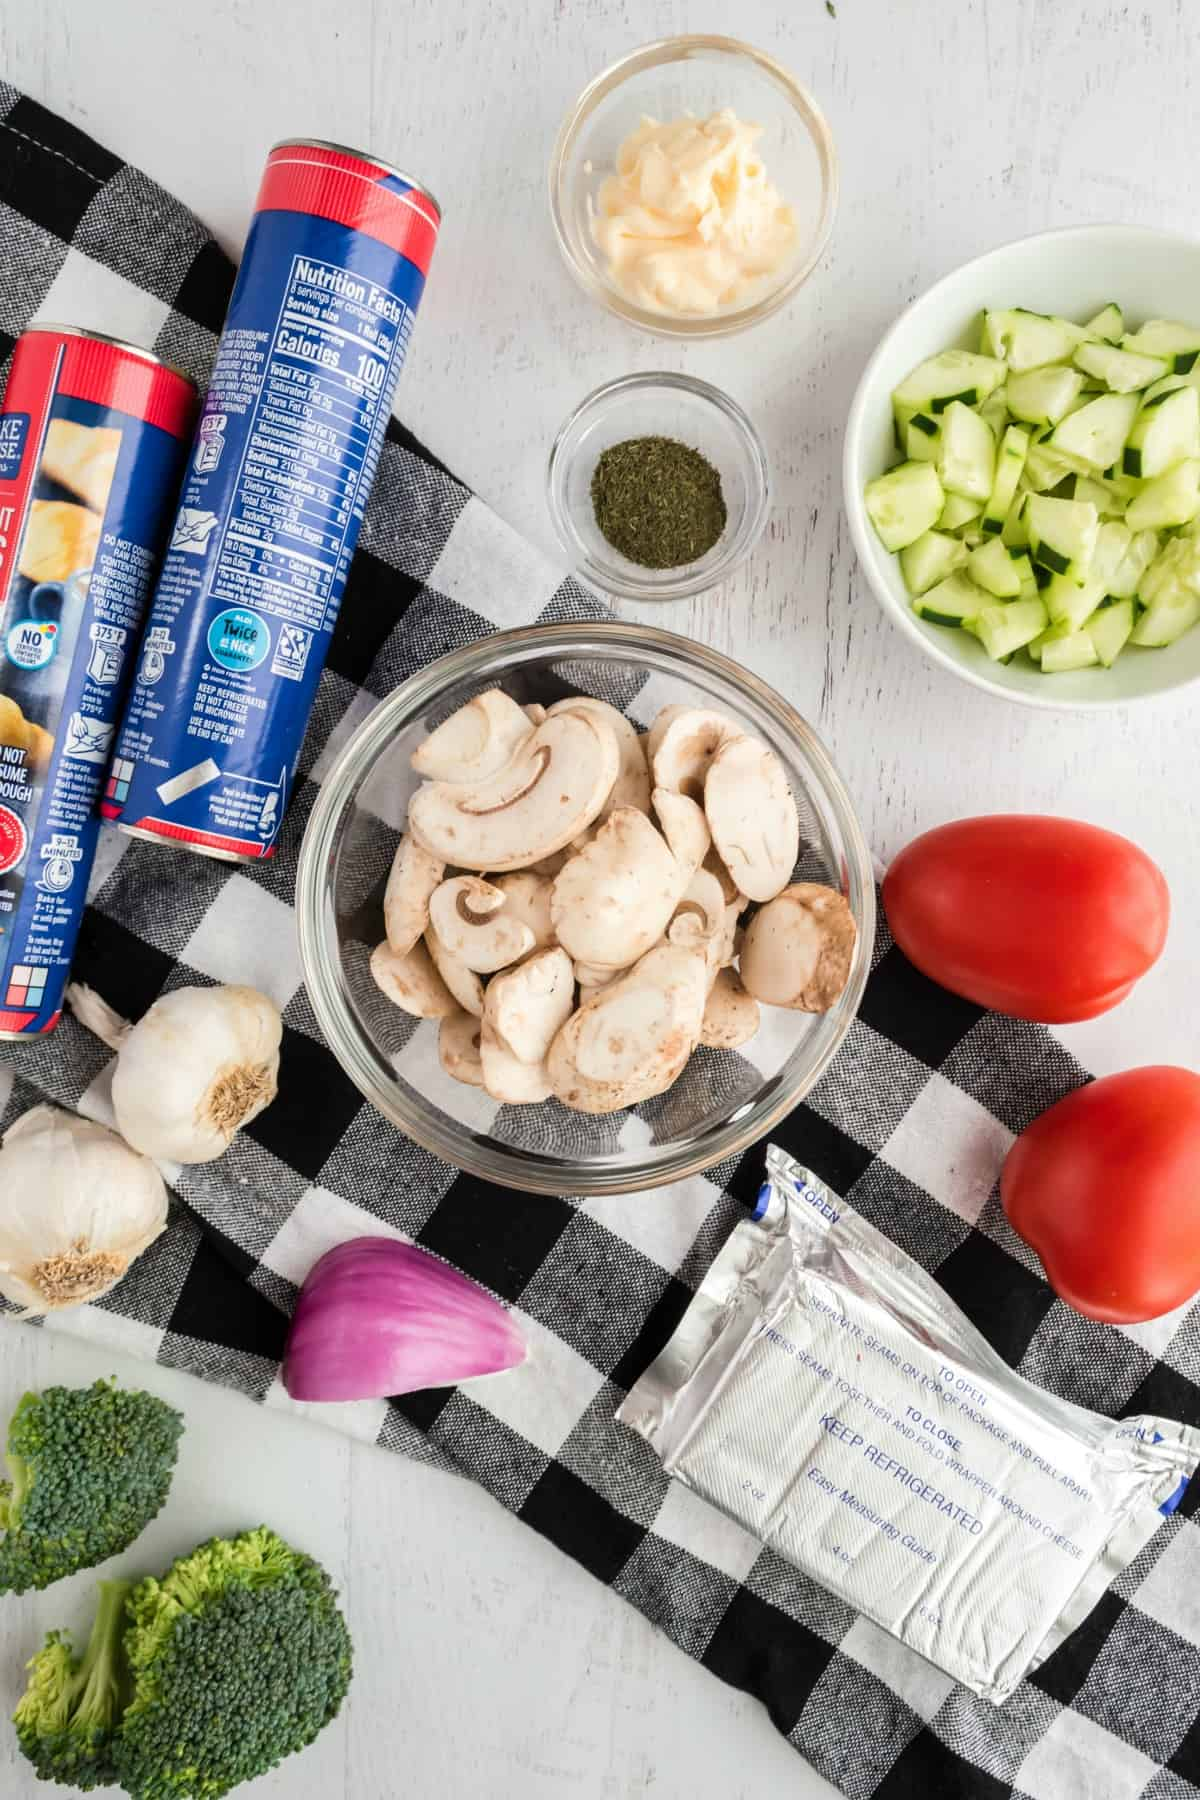 Ingredients needed for making a crescent roll pizza with vegetables.